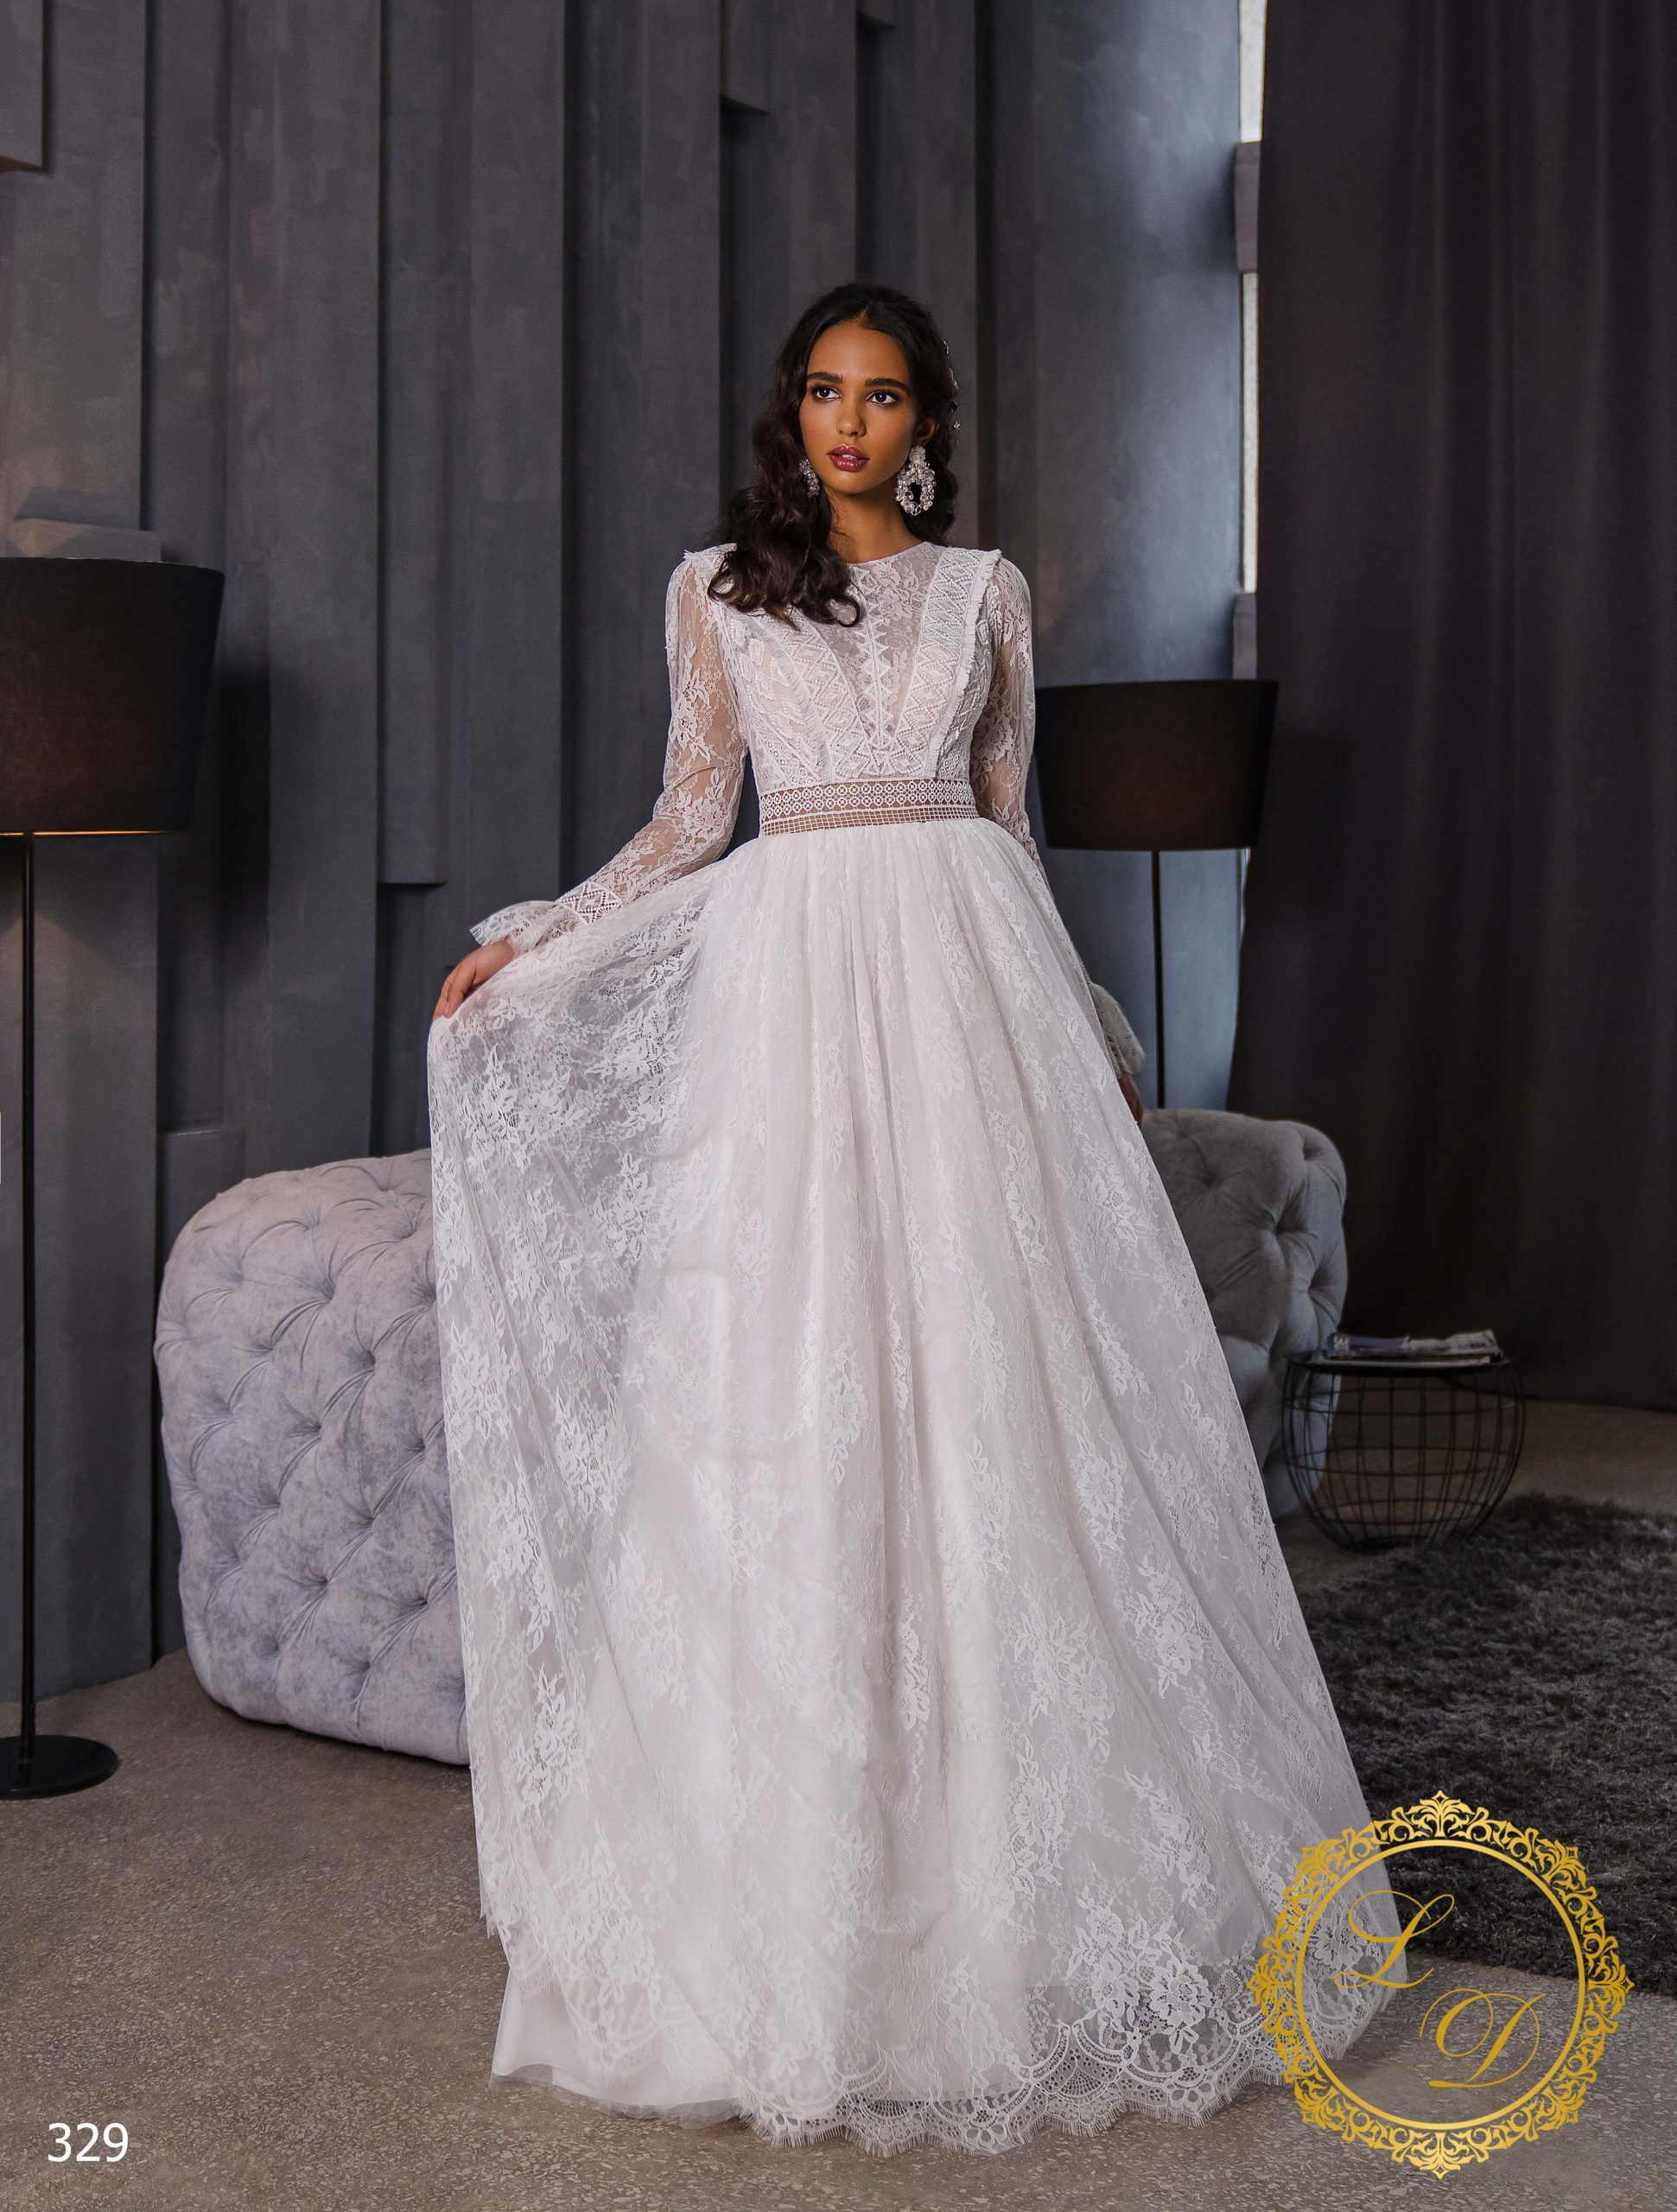 Wedding dress Lady Di 329-1